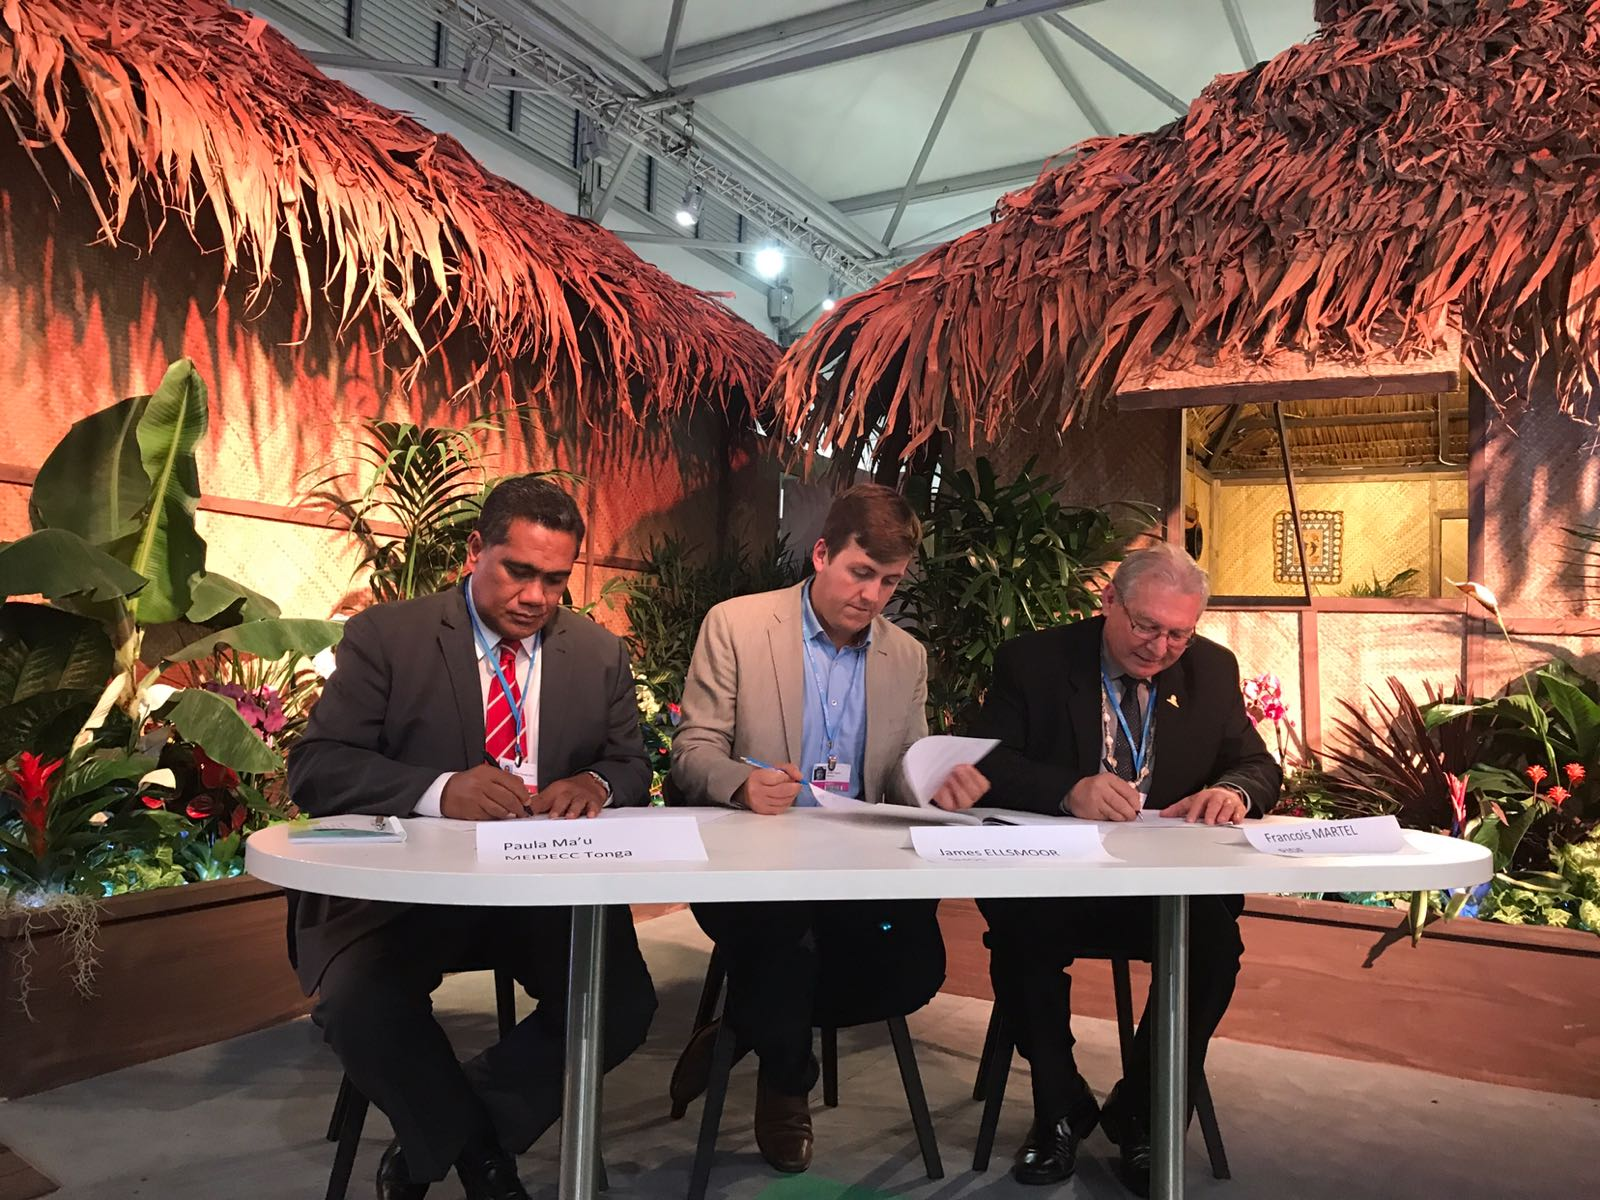 Delegates sign the agreement for solar on St George's Palace. From left to right: Tonga's Paula Mau'u, SHOS's James Ellsmoor and PIDF's François Martel.